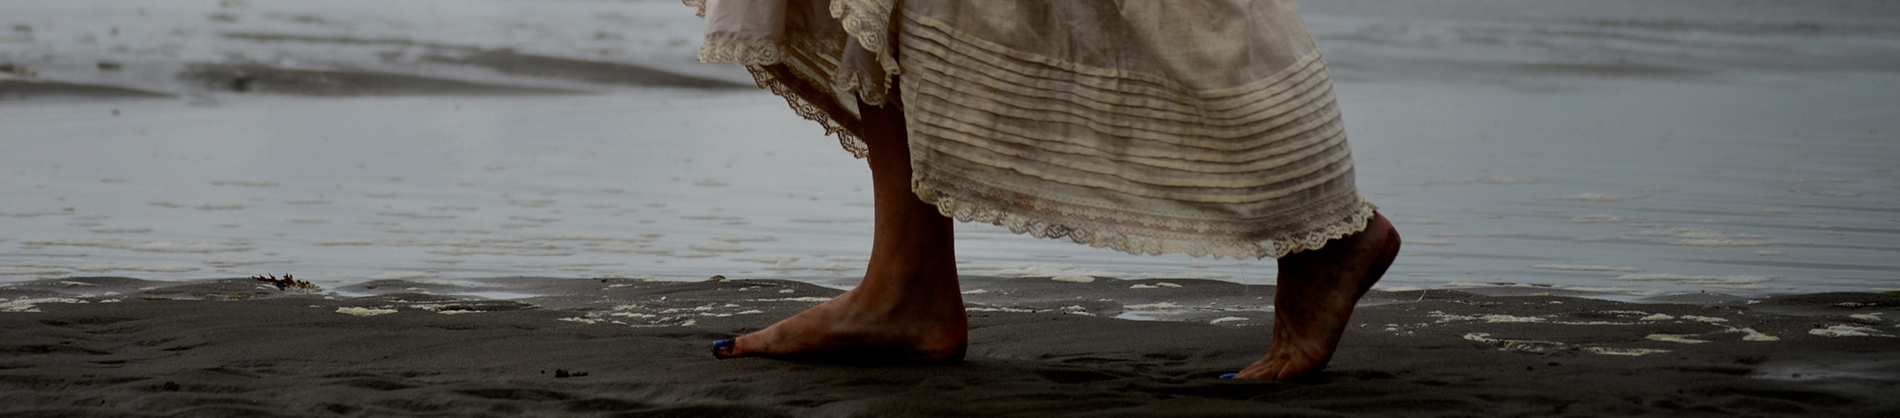 A women bare foot walking across sand in a creme dress